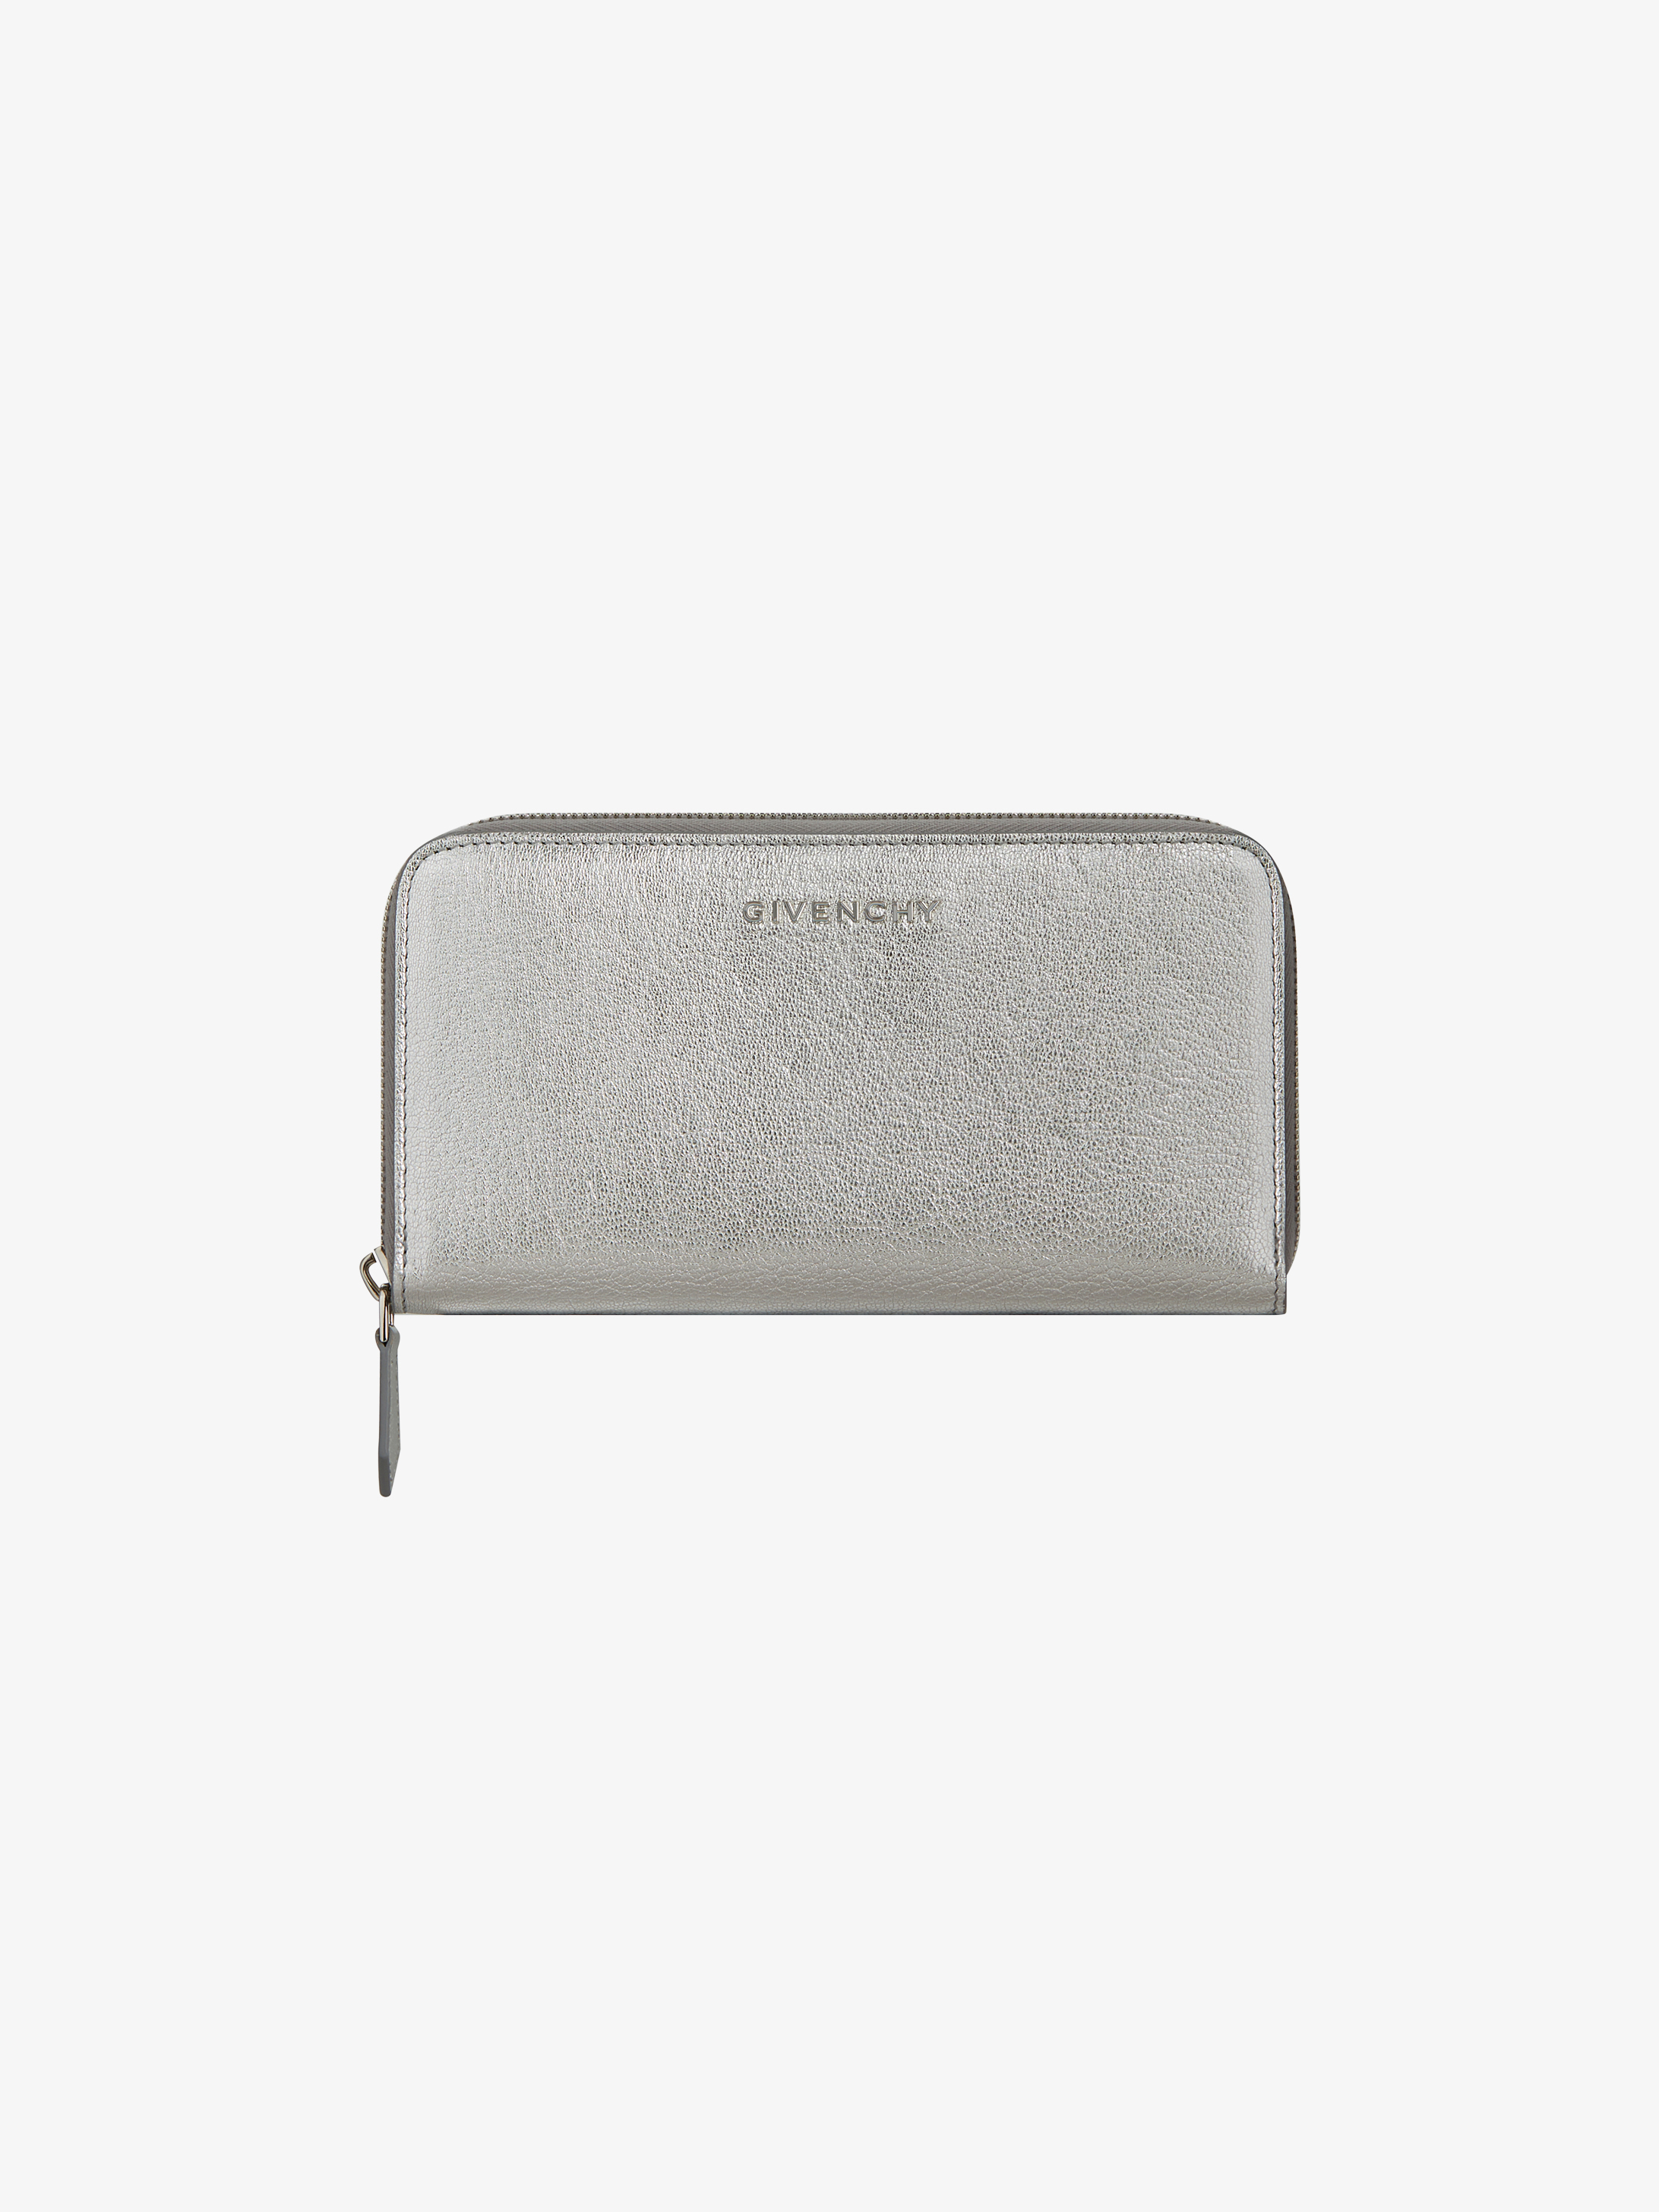 Pandora long zipped wallet in leather